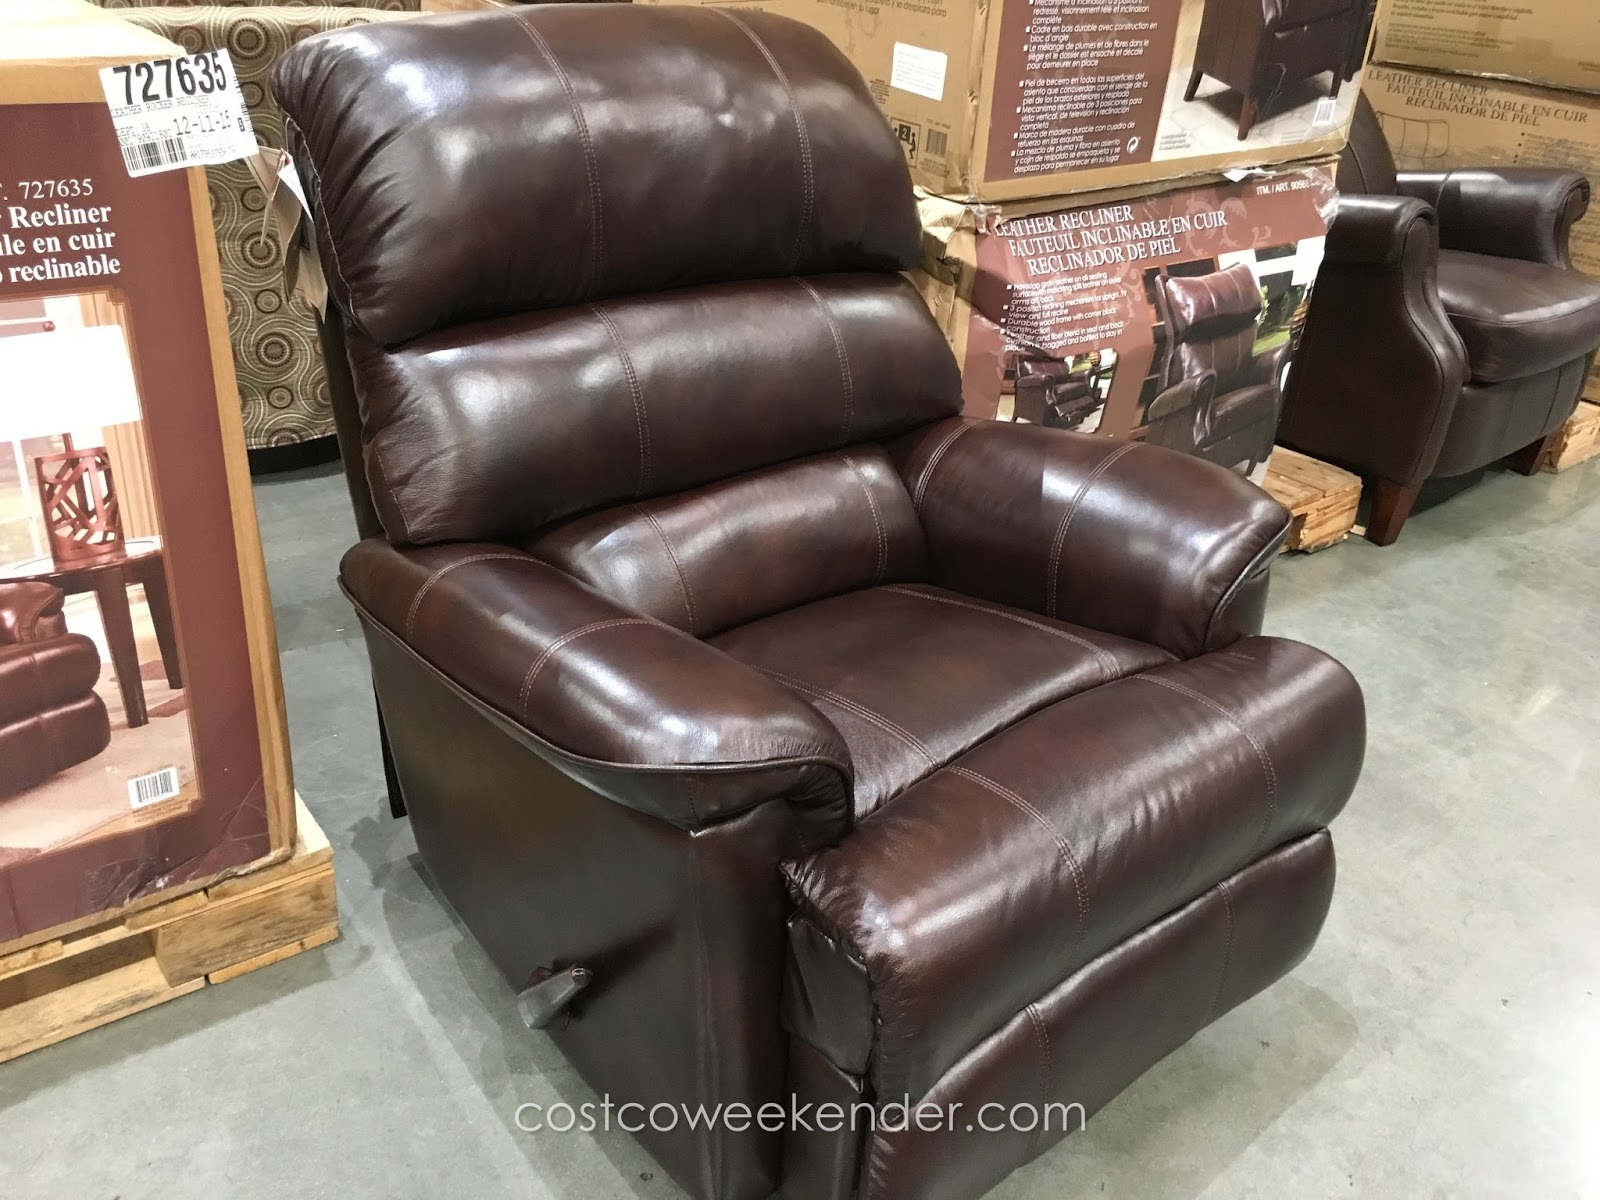 Barcalounger Leather Rocker Recliner Chair Costco Weekender